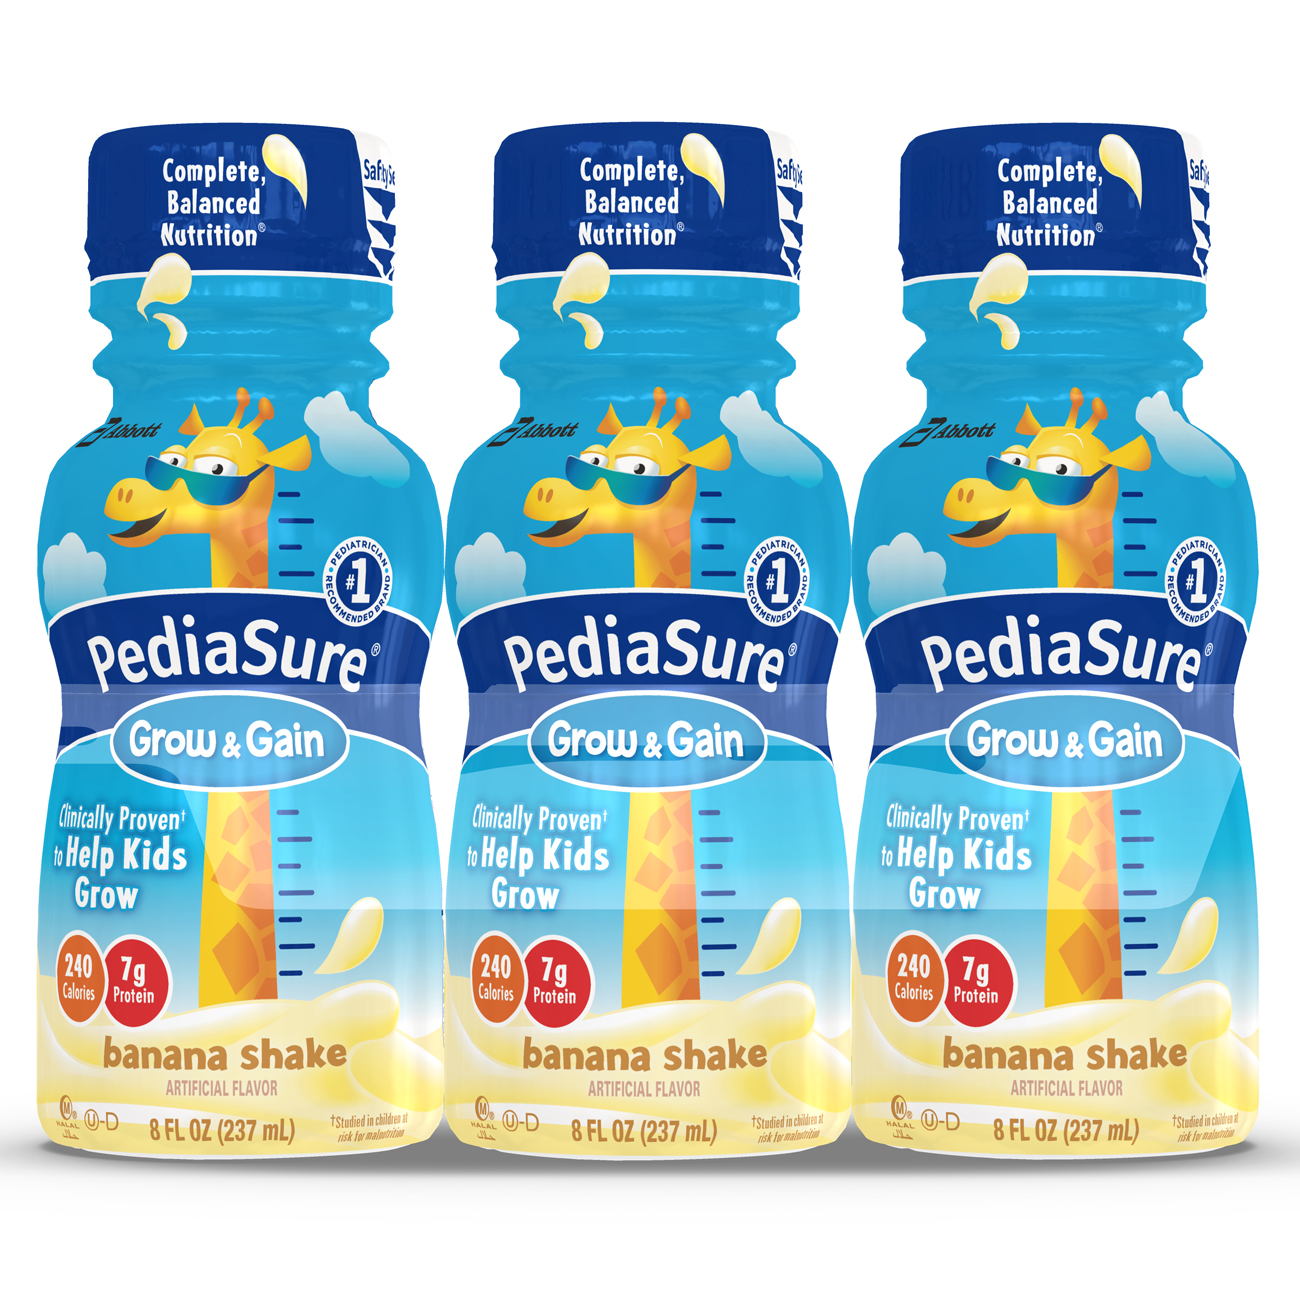 PediaSure Grow & Gain Nutrition Shake For Kids, Banana, 8 fl oz (Pack of 6)